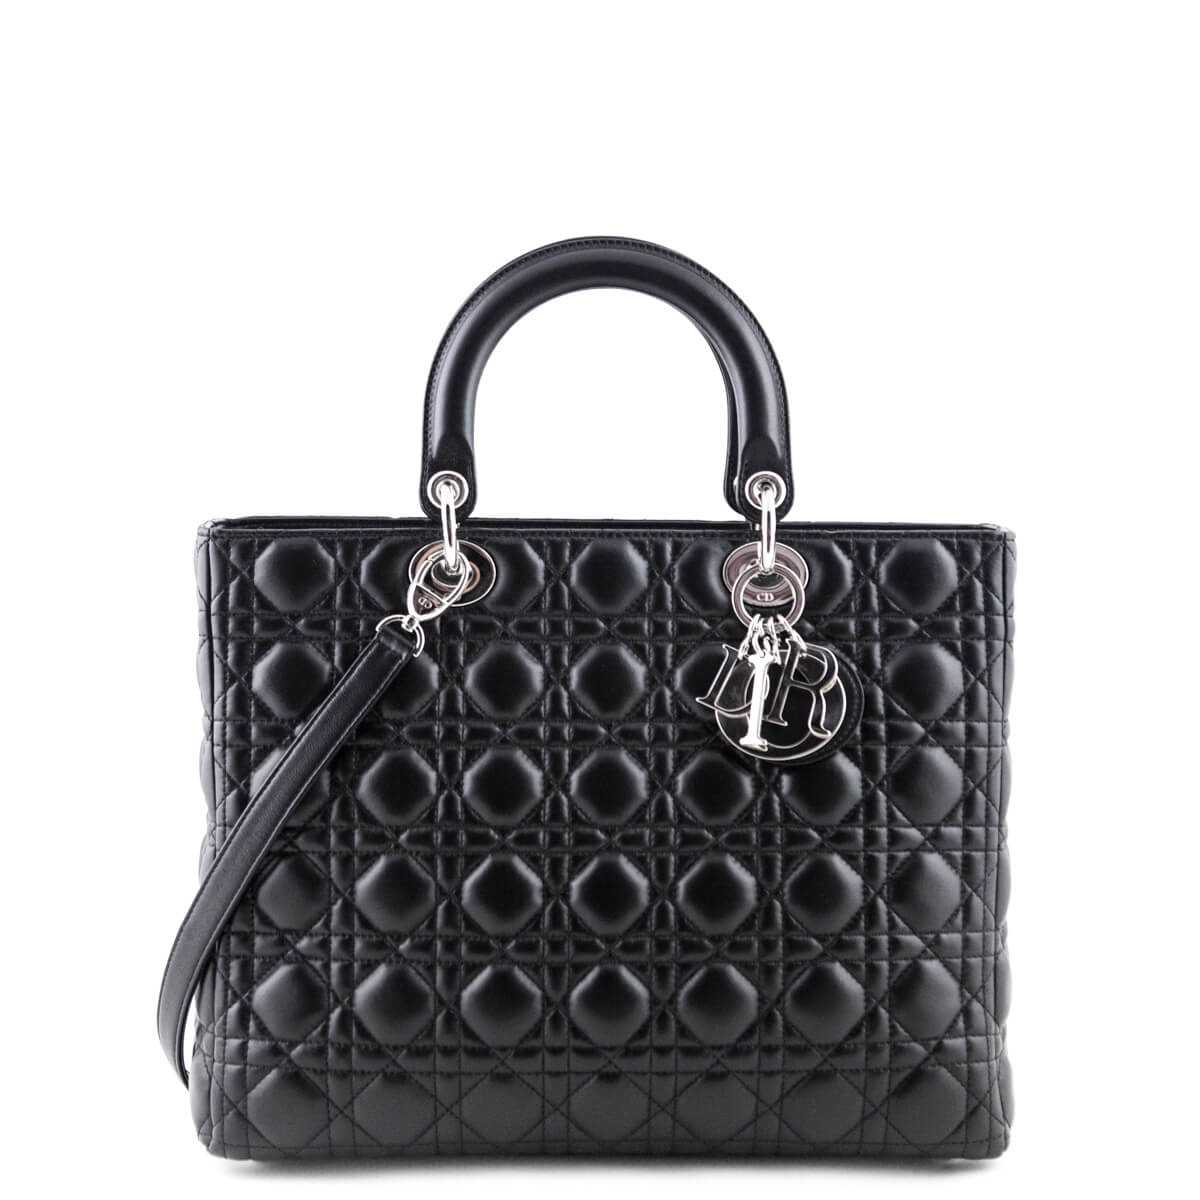 1326b3c49d Dior Black Cannage Lambskin Large Lady Dior - LOVE that BAG - Preowned  Authentic Designer Handbags ...